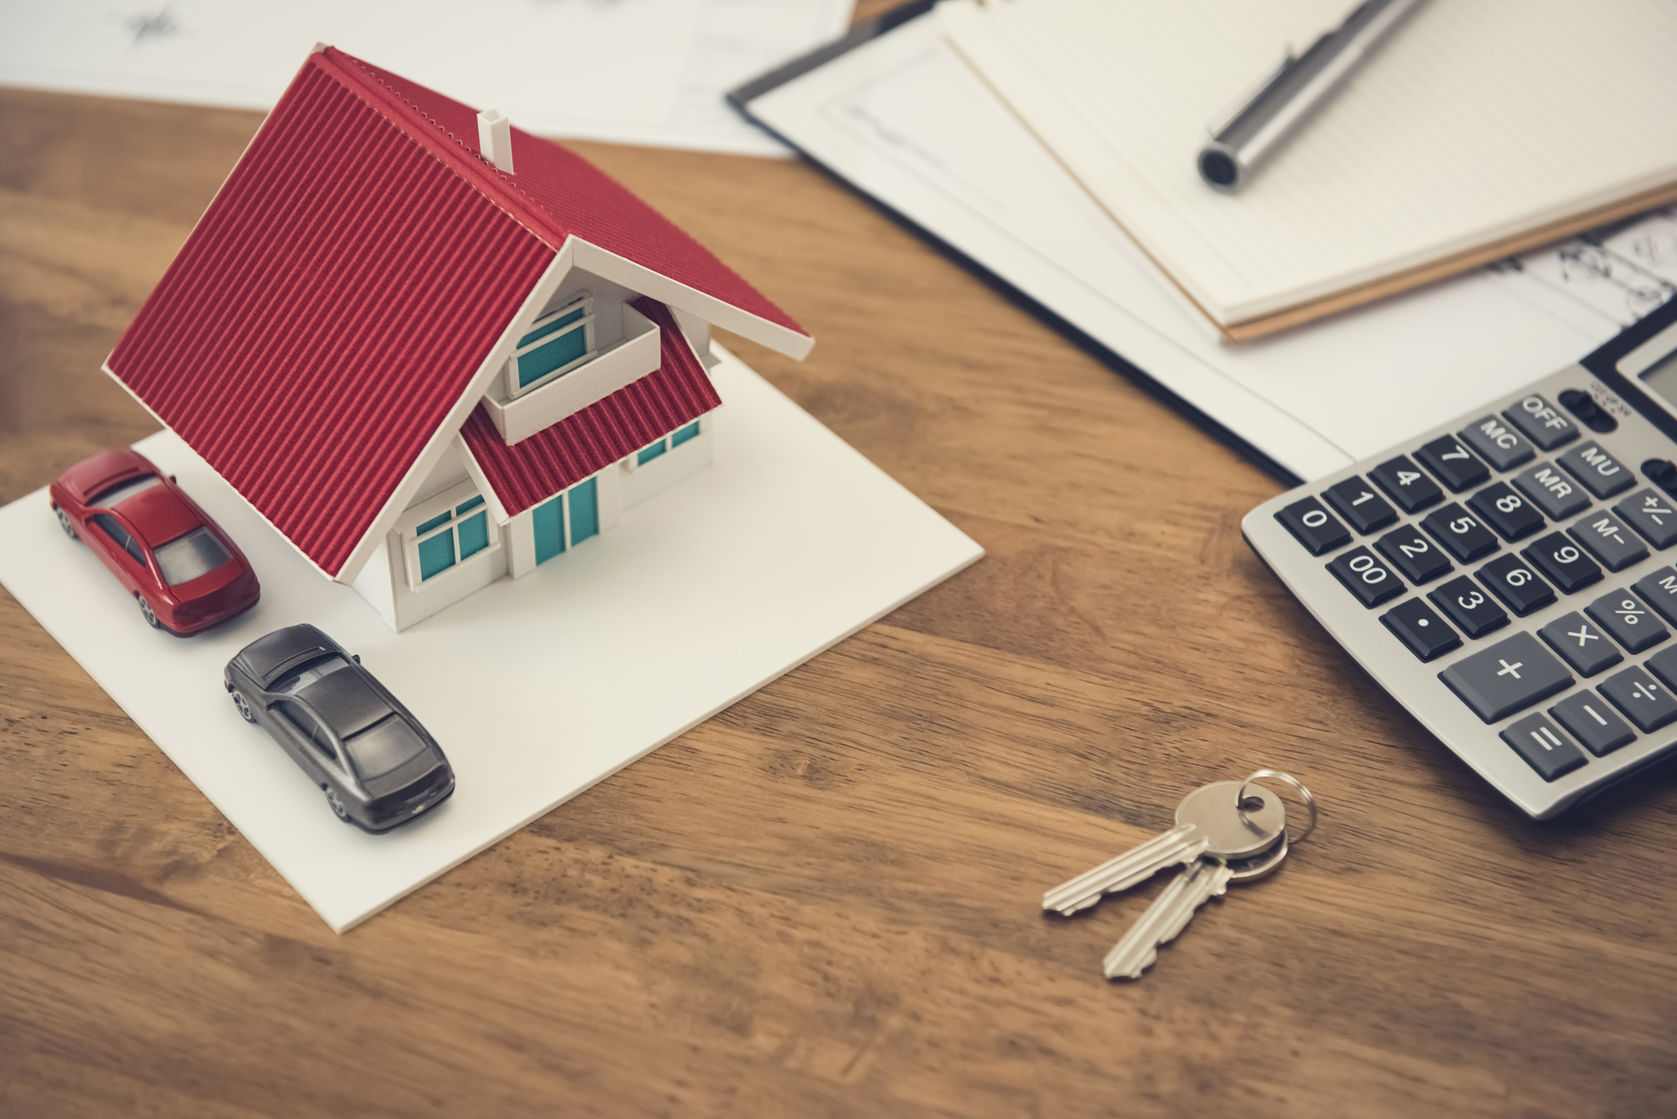 House model, key and calculator with documents on the table - real estate and property concept